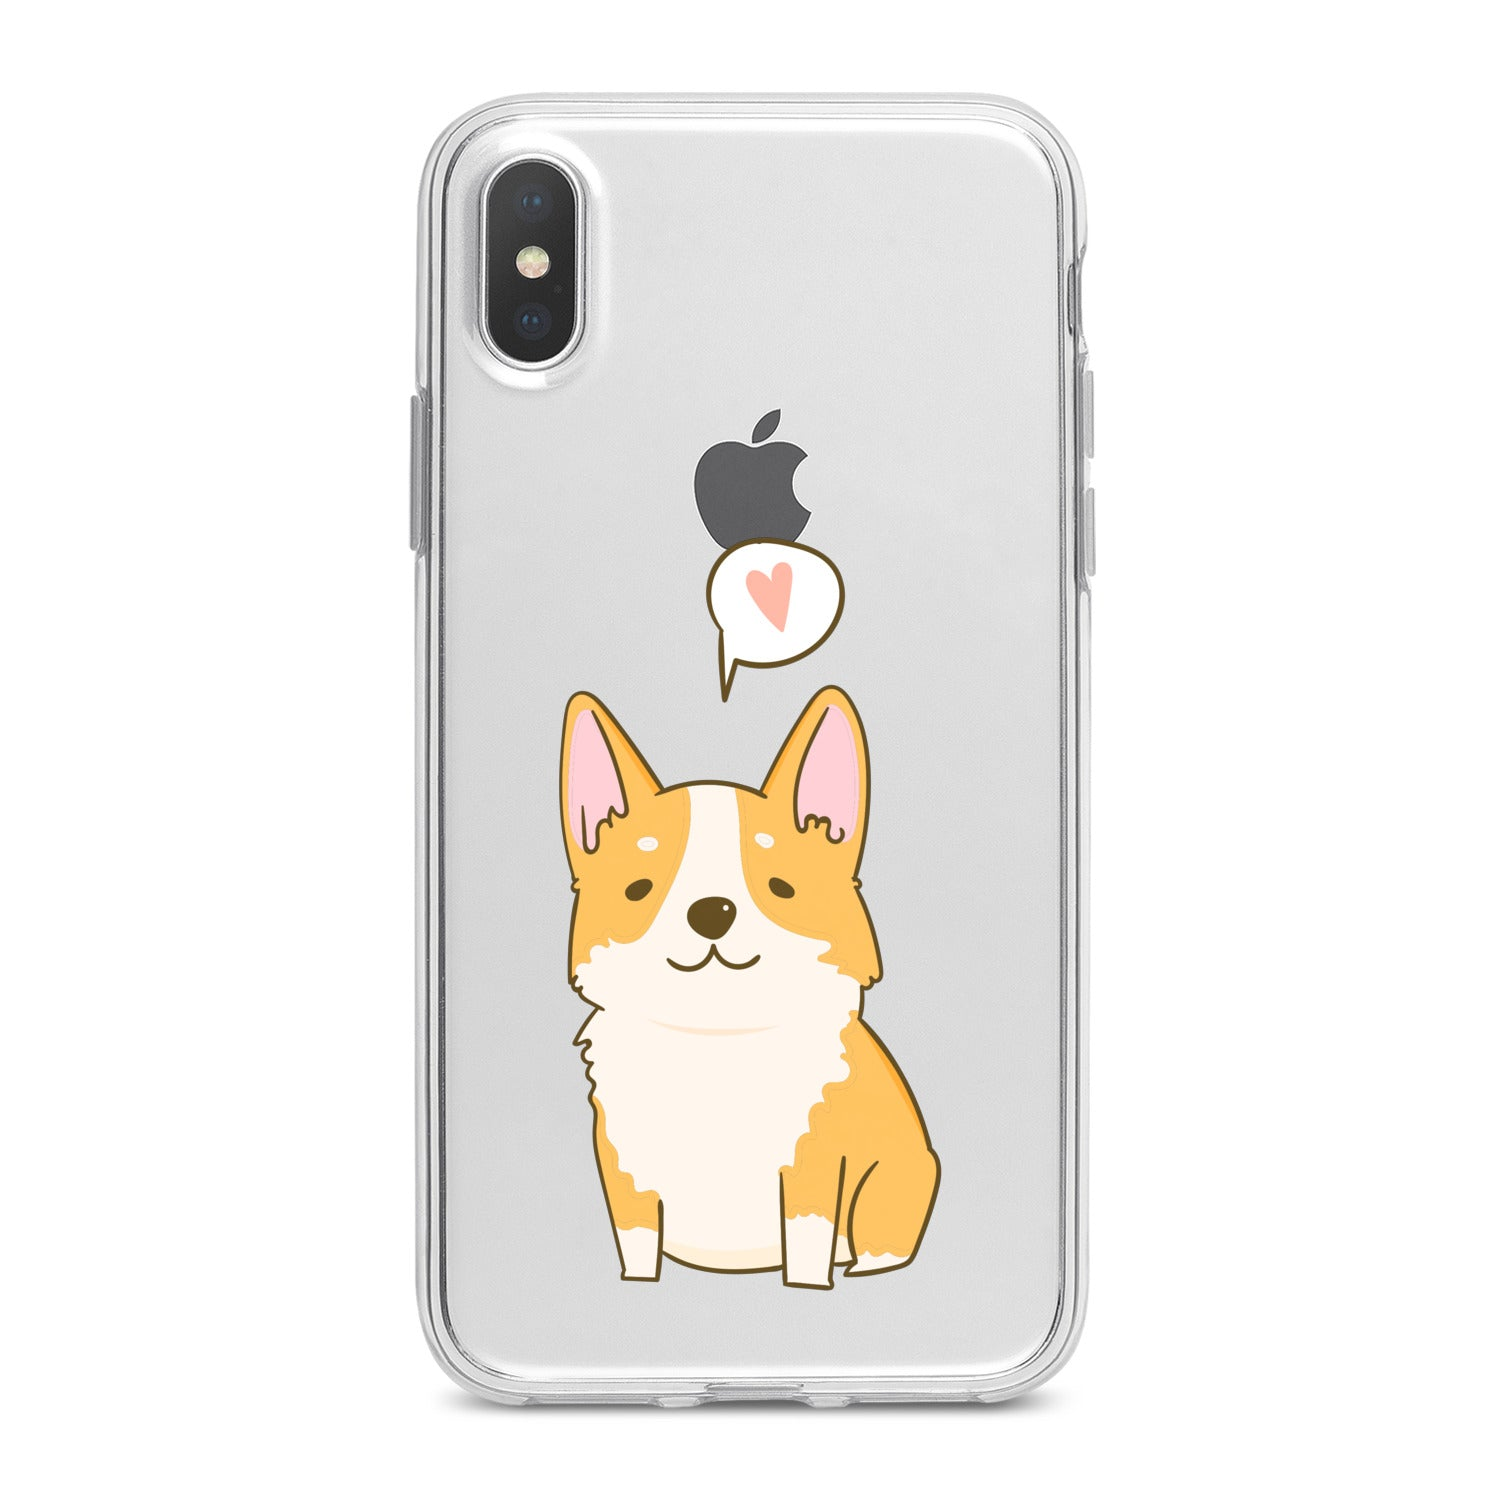 Lex Altern Cute Baby Corgi Phone Case for your iPhone & Android phone.